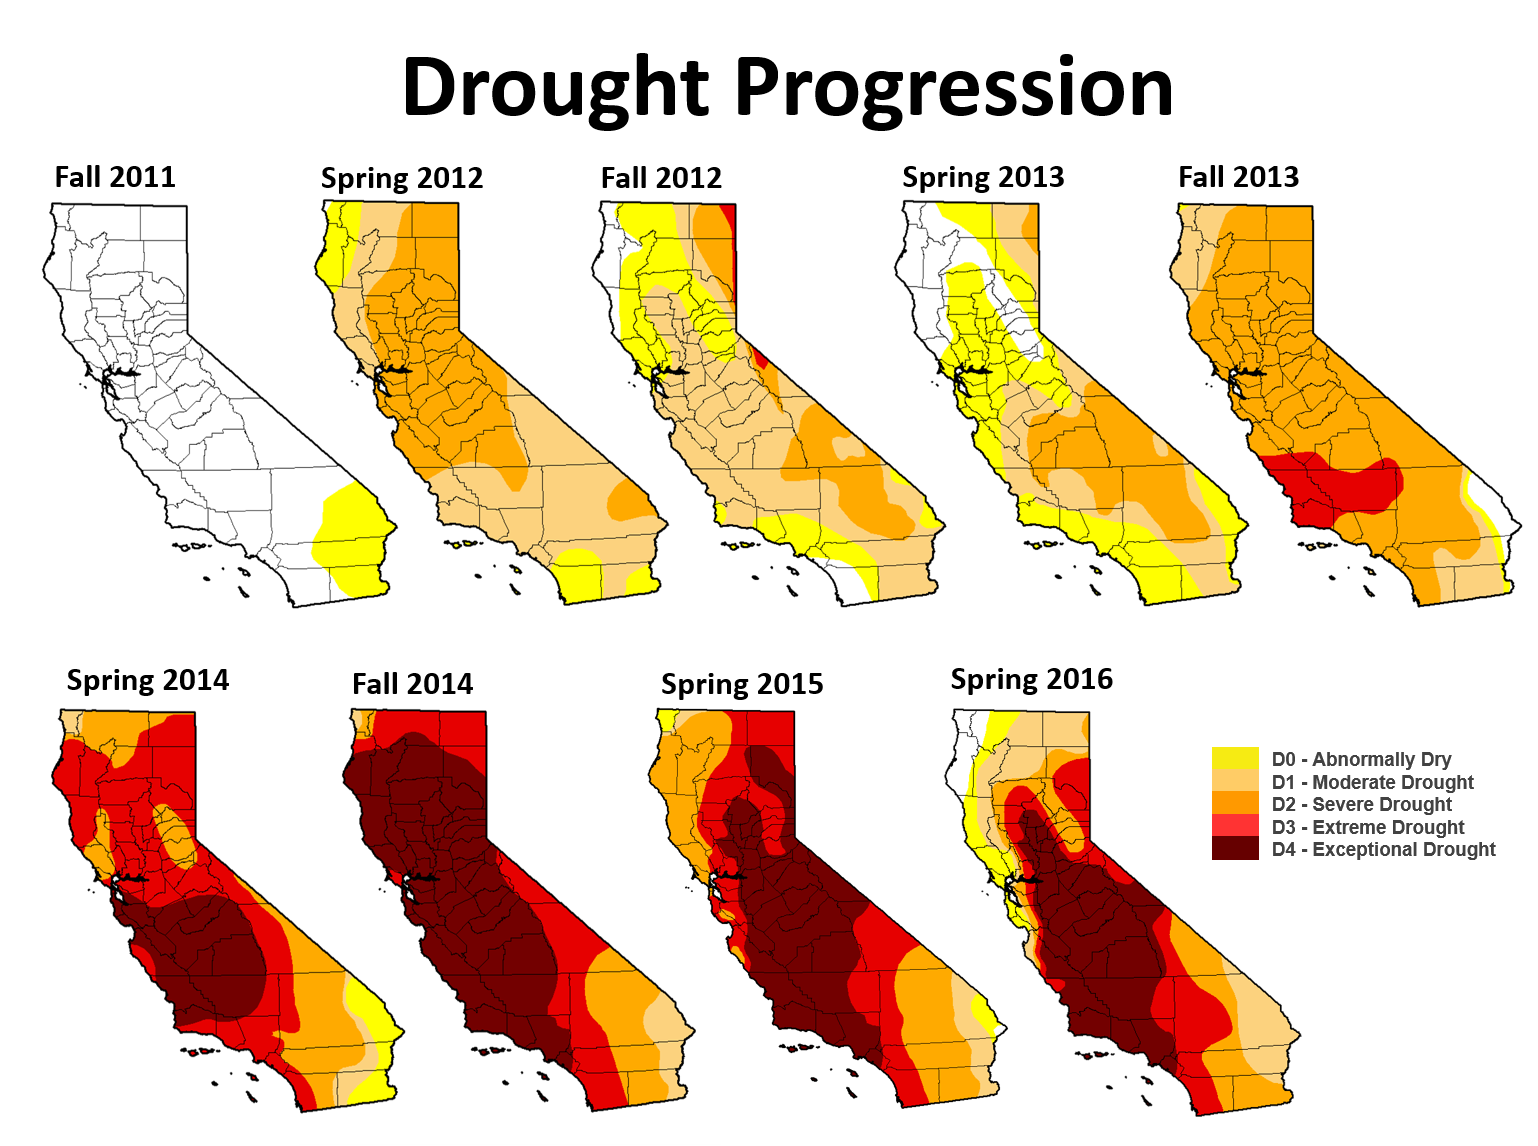 Eight maps of California showing drought severity progression